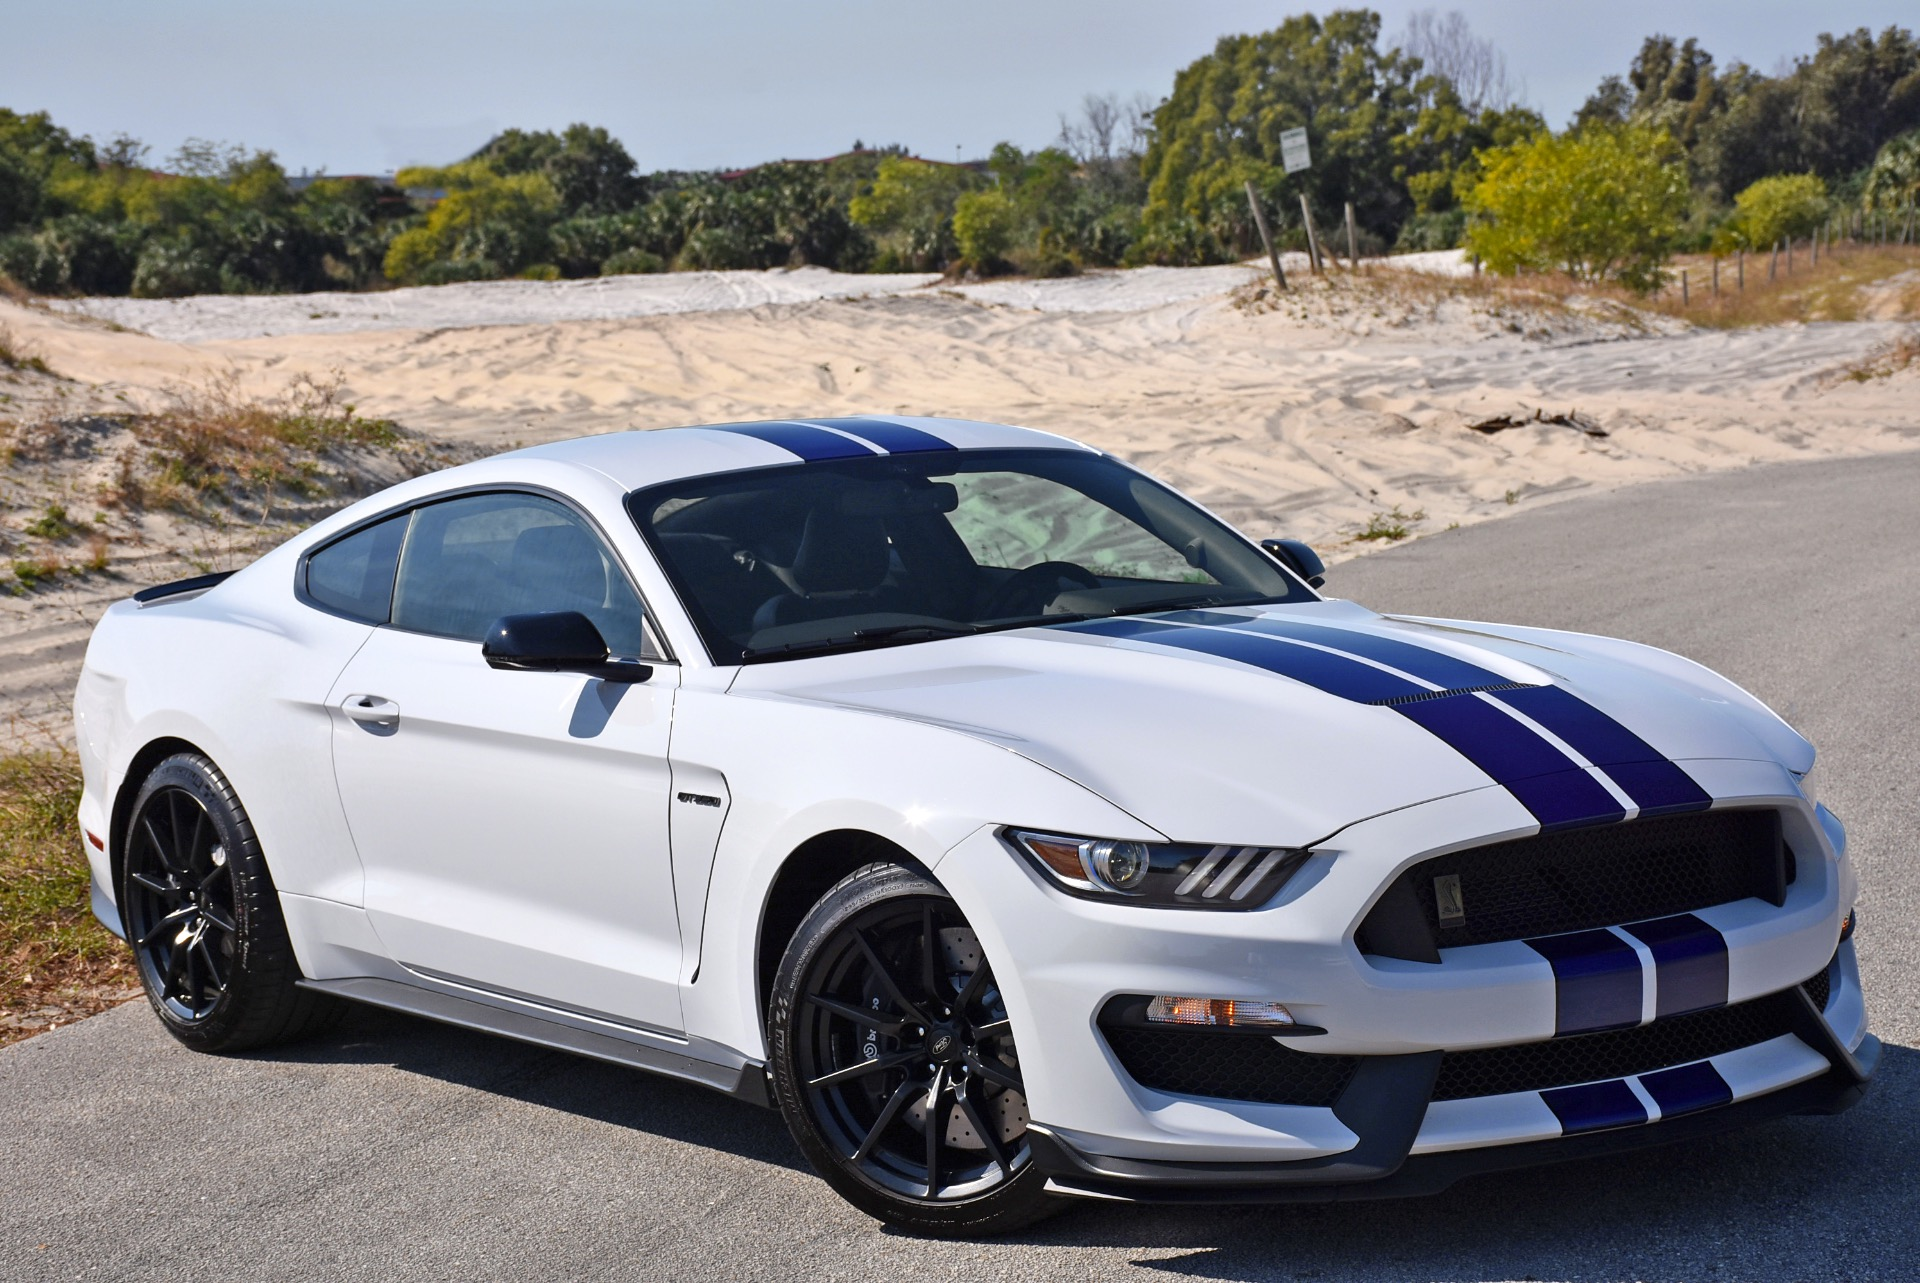 2016 ford mustang shelby gt350 shelby gt350 stock 5911 for sale near lake park fl fl ford. Black Bedroom Furniture Sets. Home Design Ideas